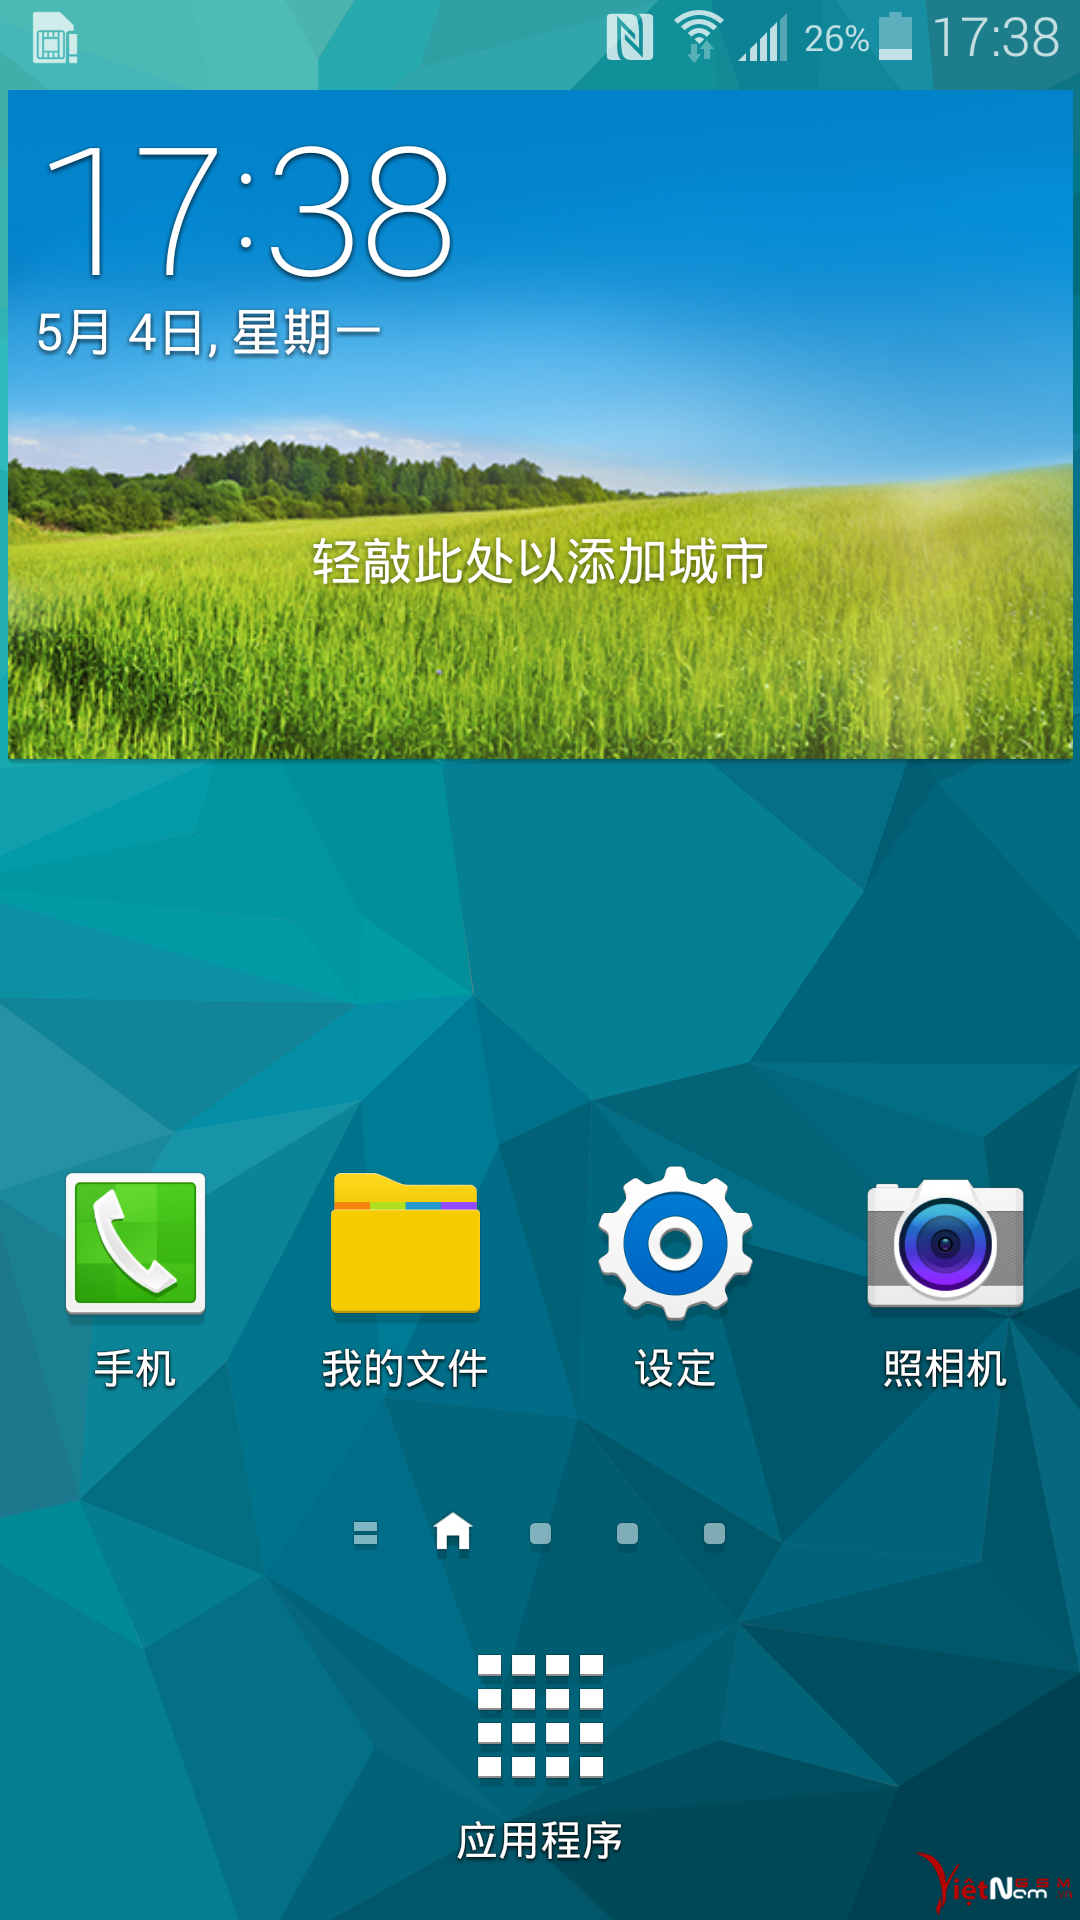 Screenshot_2015-05-04-17-38-54.png